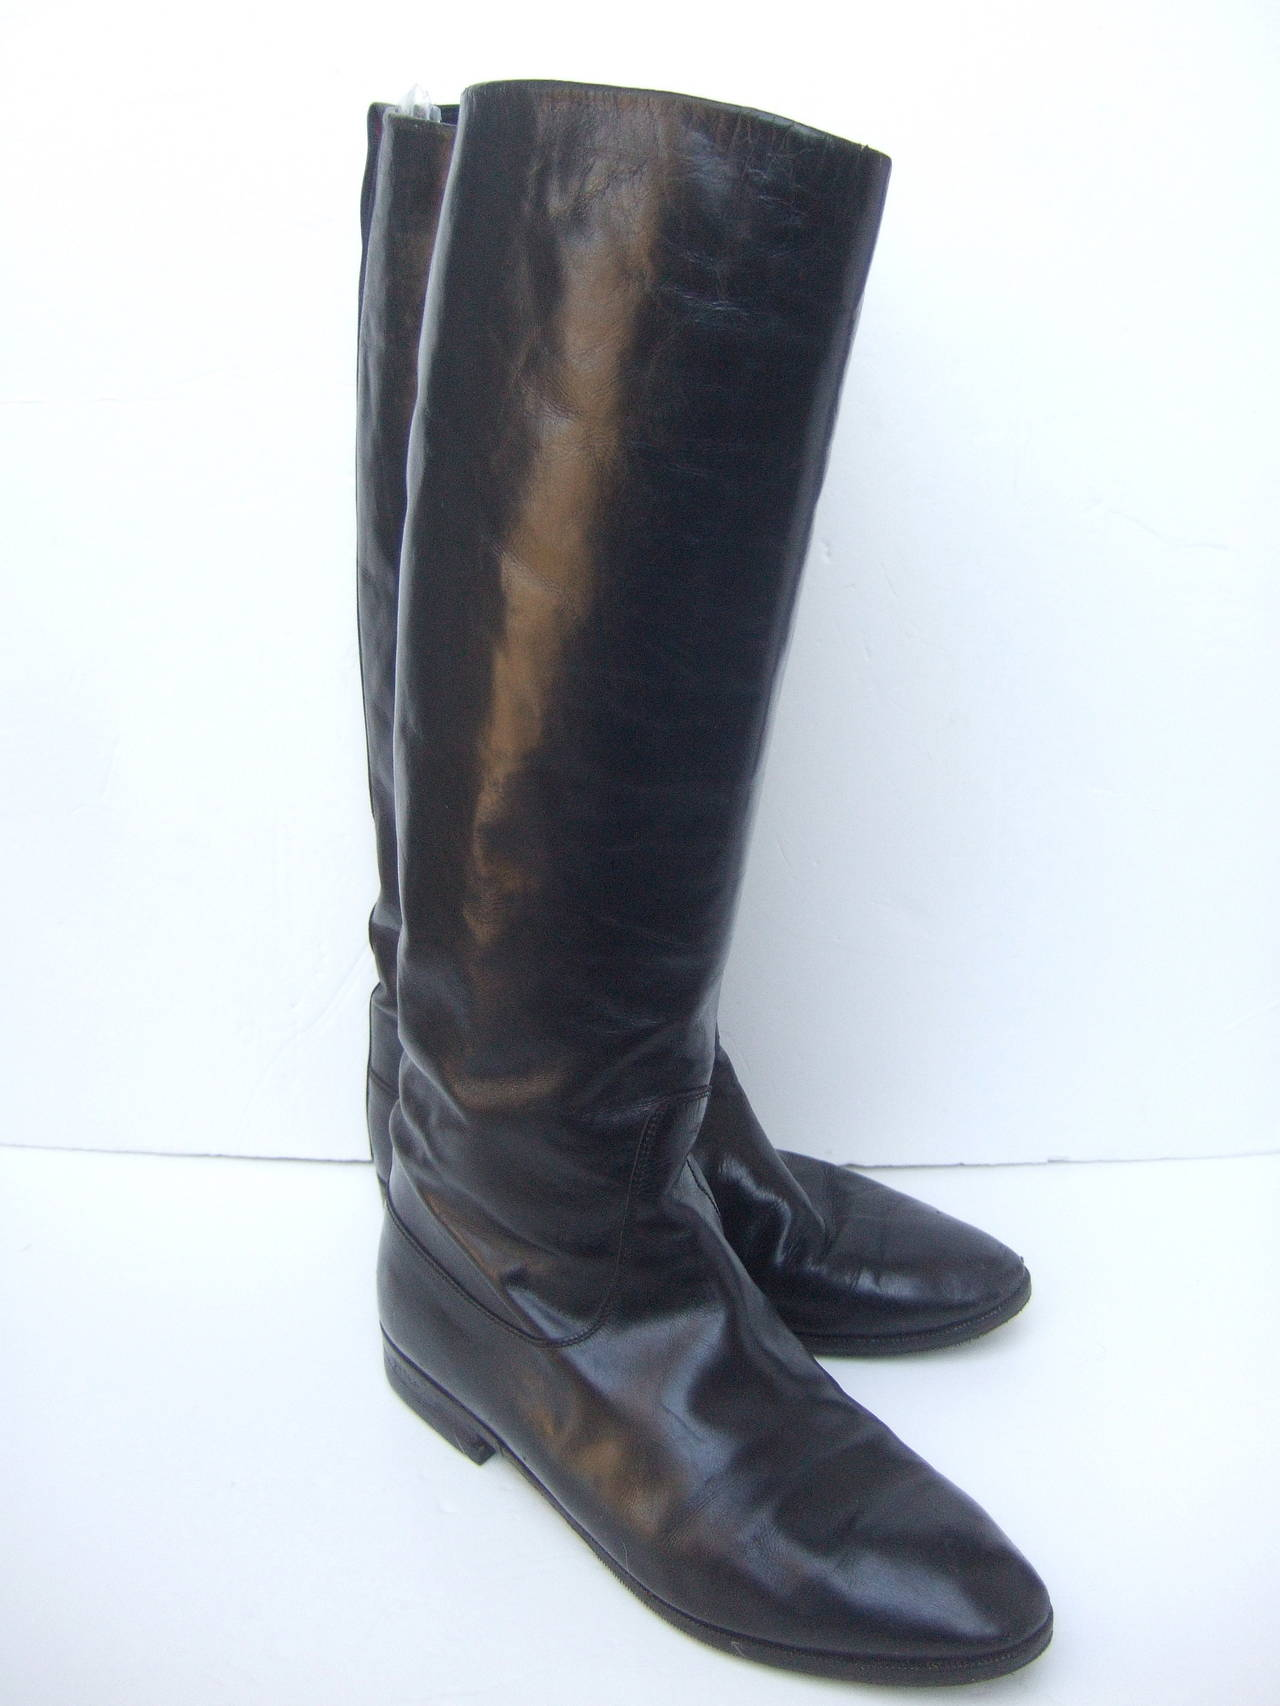 Gucci Black Leather Vintage Riding Boots c 1980s Size 38.5 2